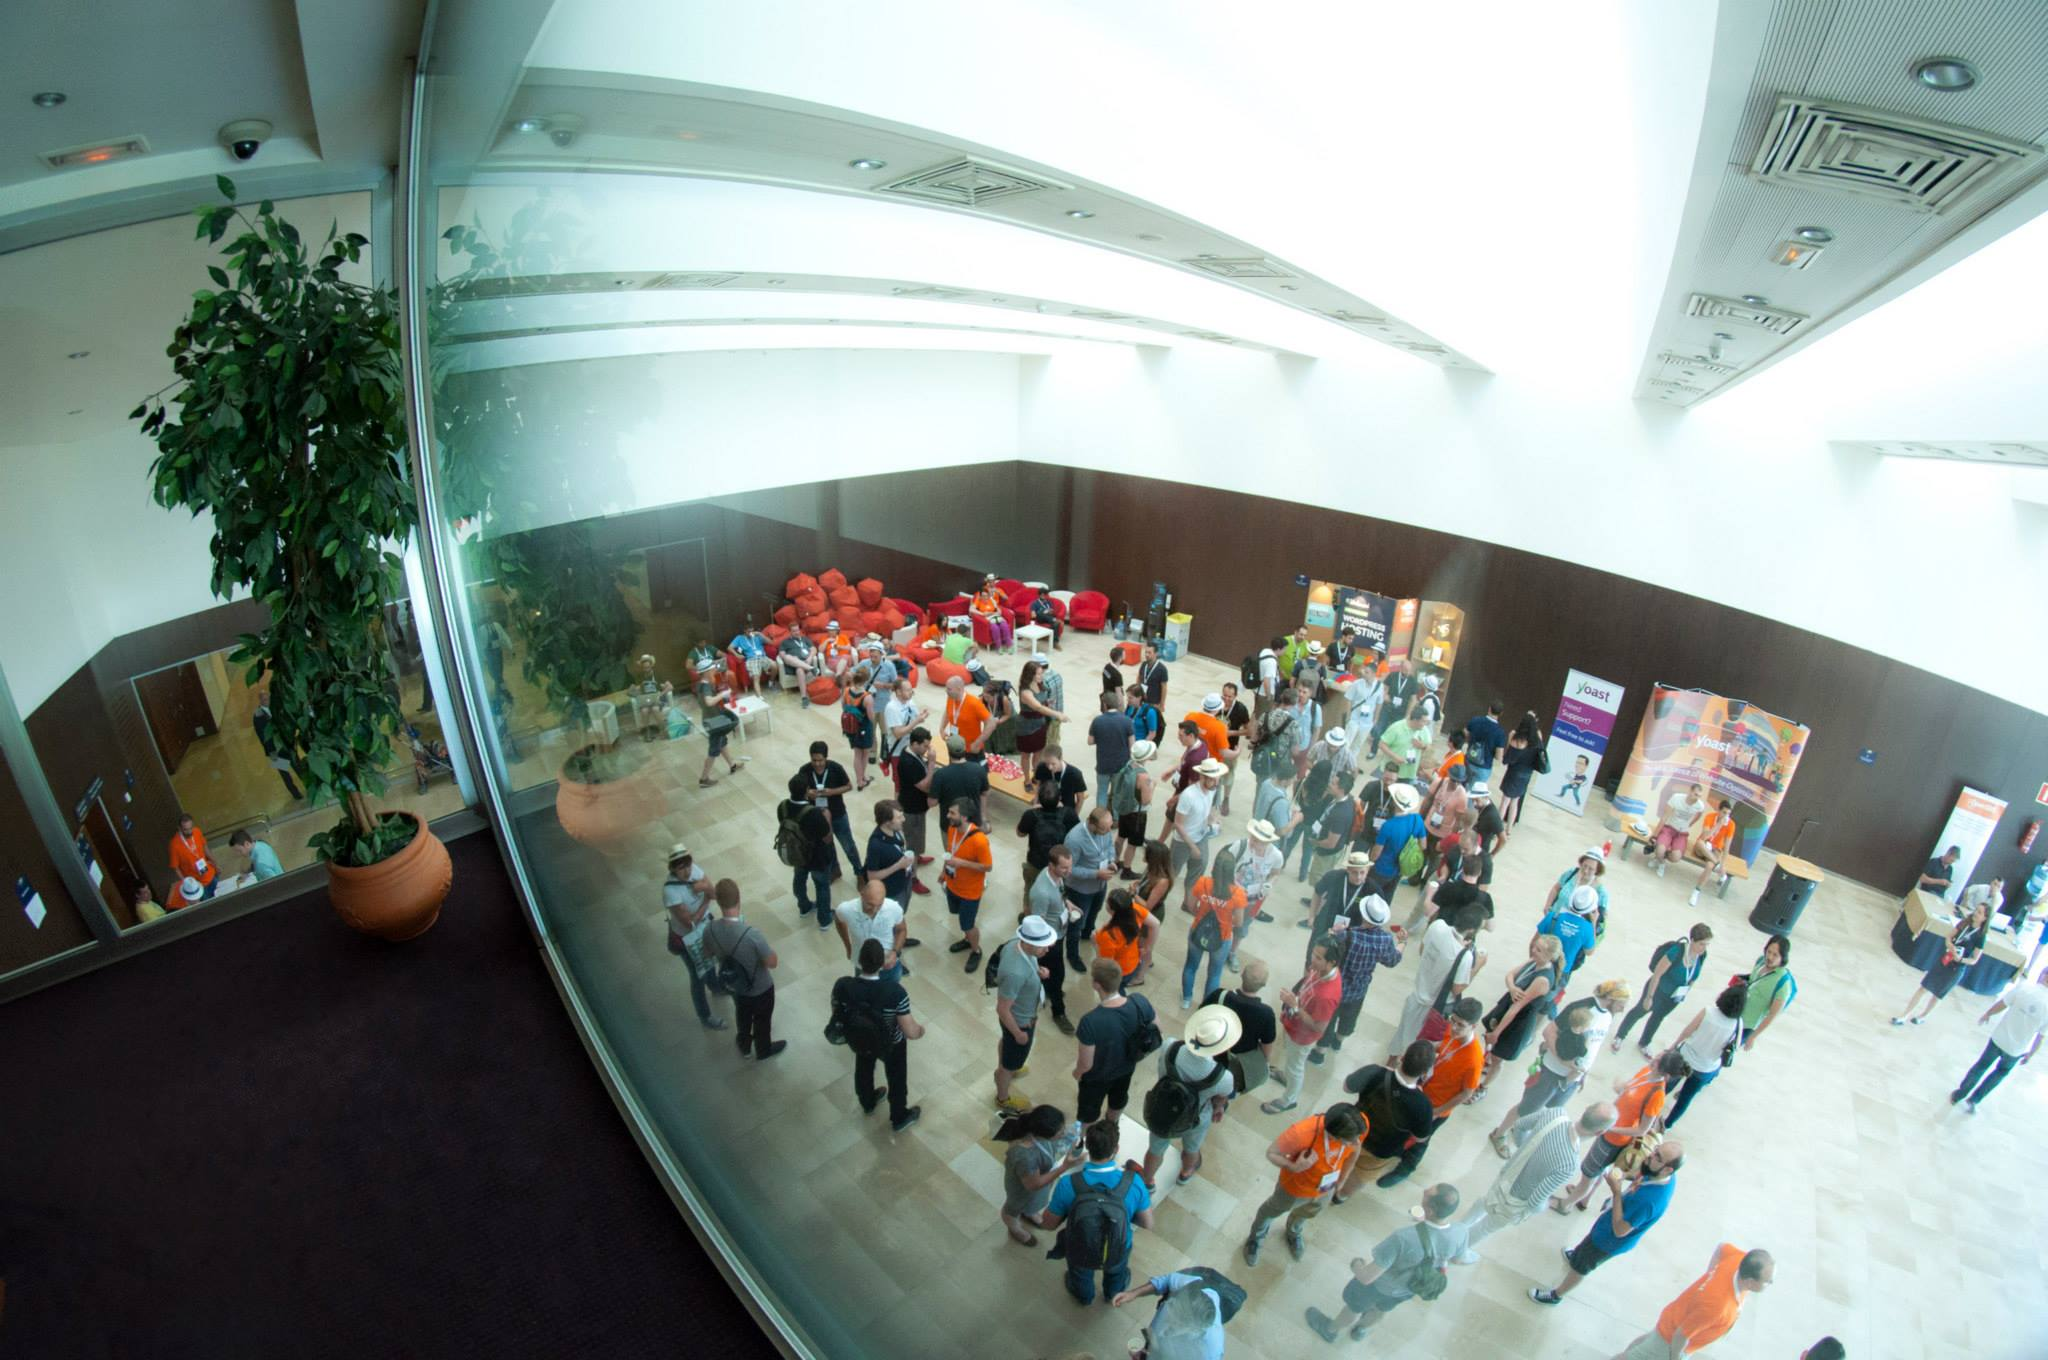 Speed networking at WordCamp Europe 2015